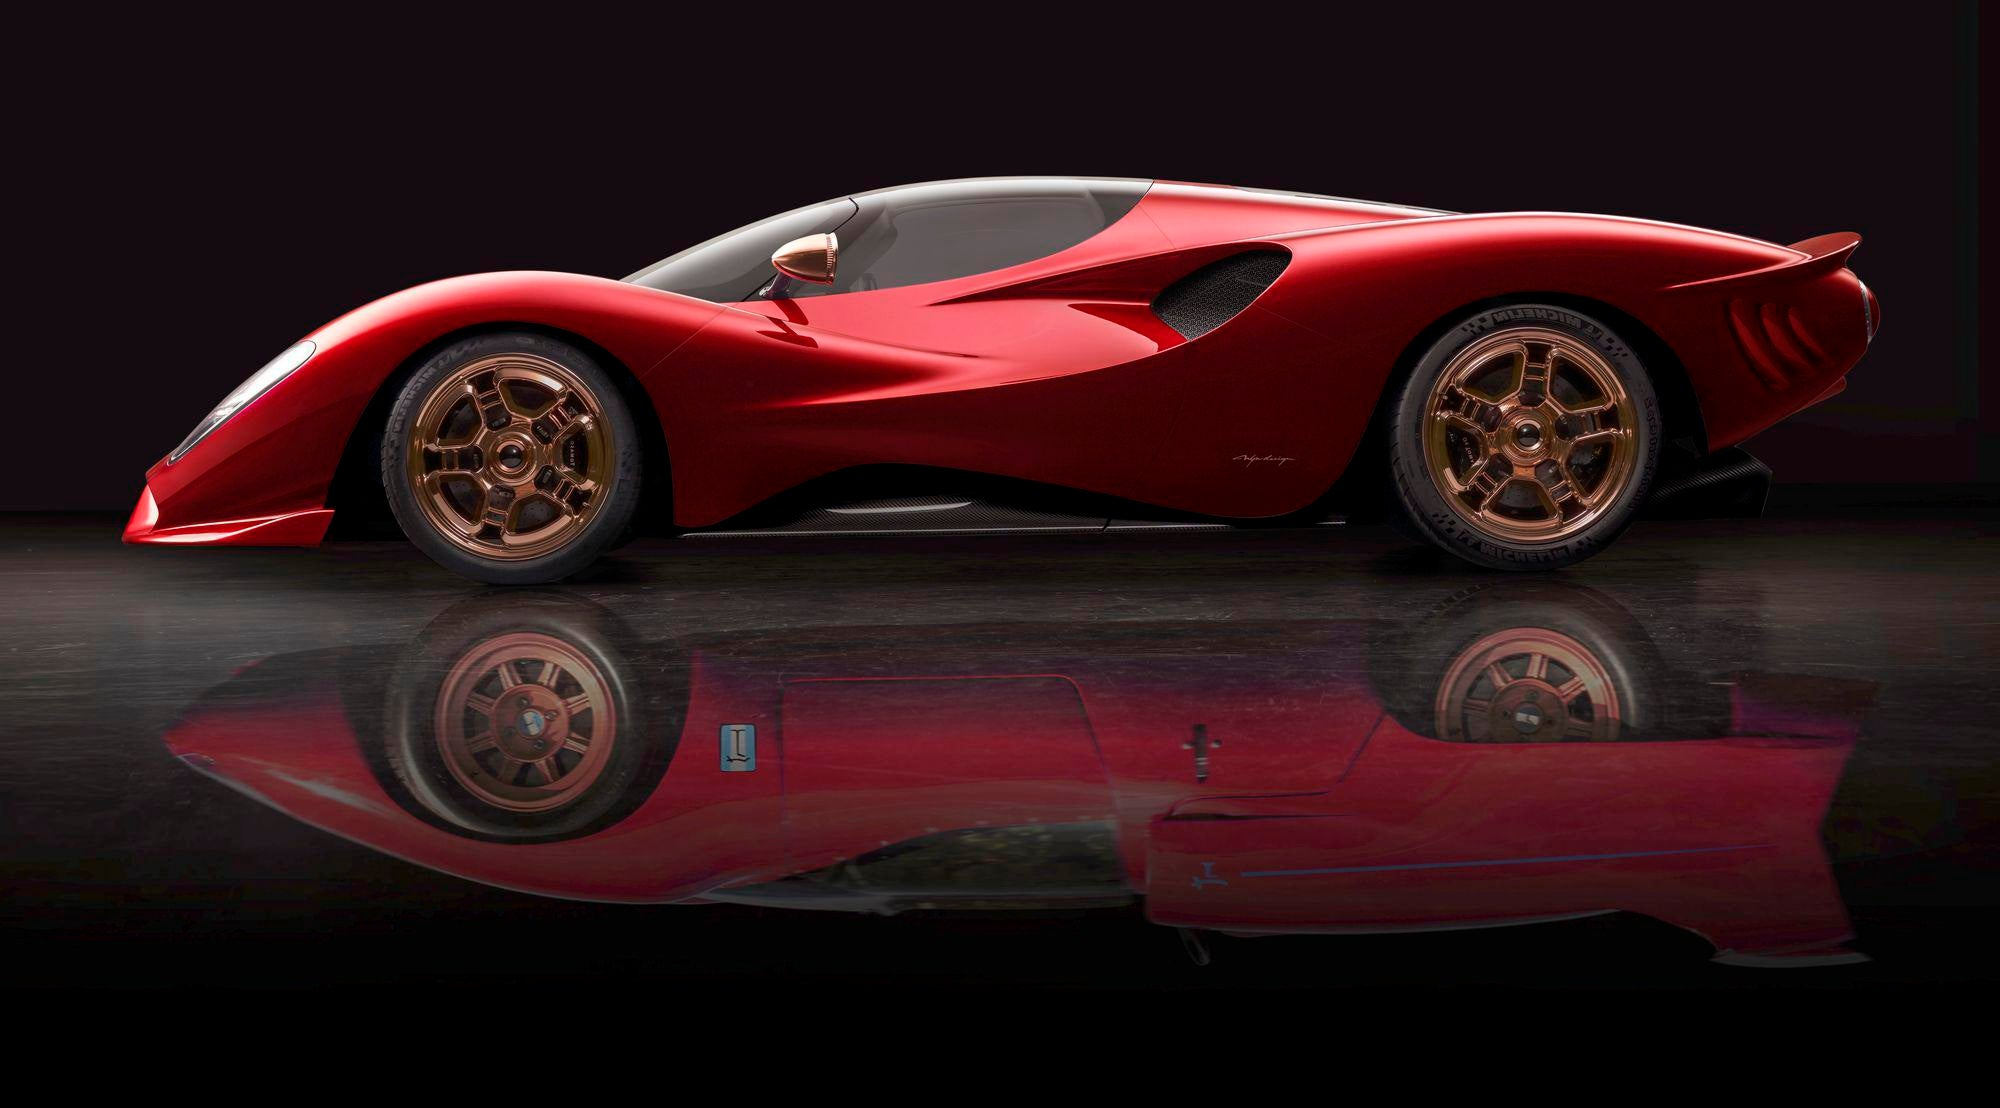 2019 DeTomaso P72. As A kid I wanted a Pantera. As an adult want one of these.